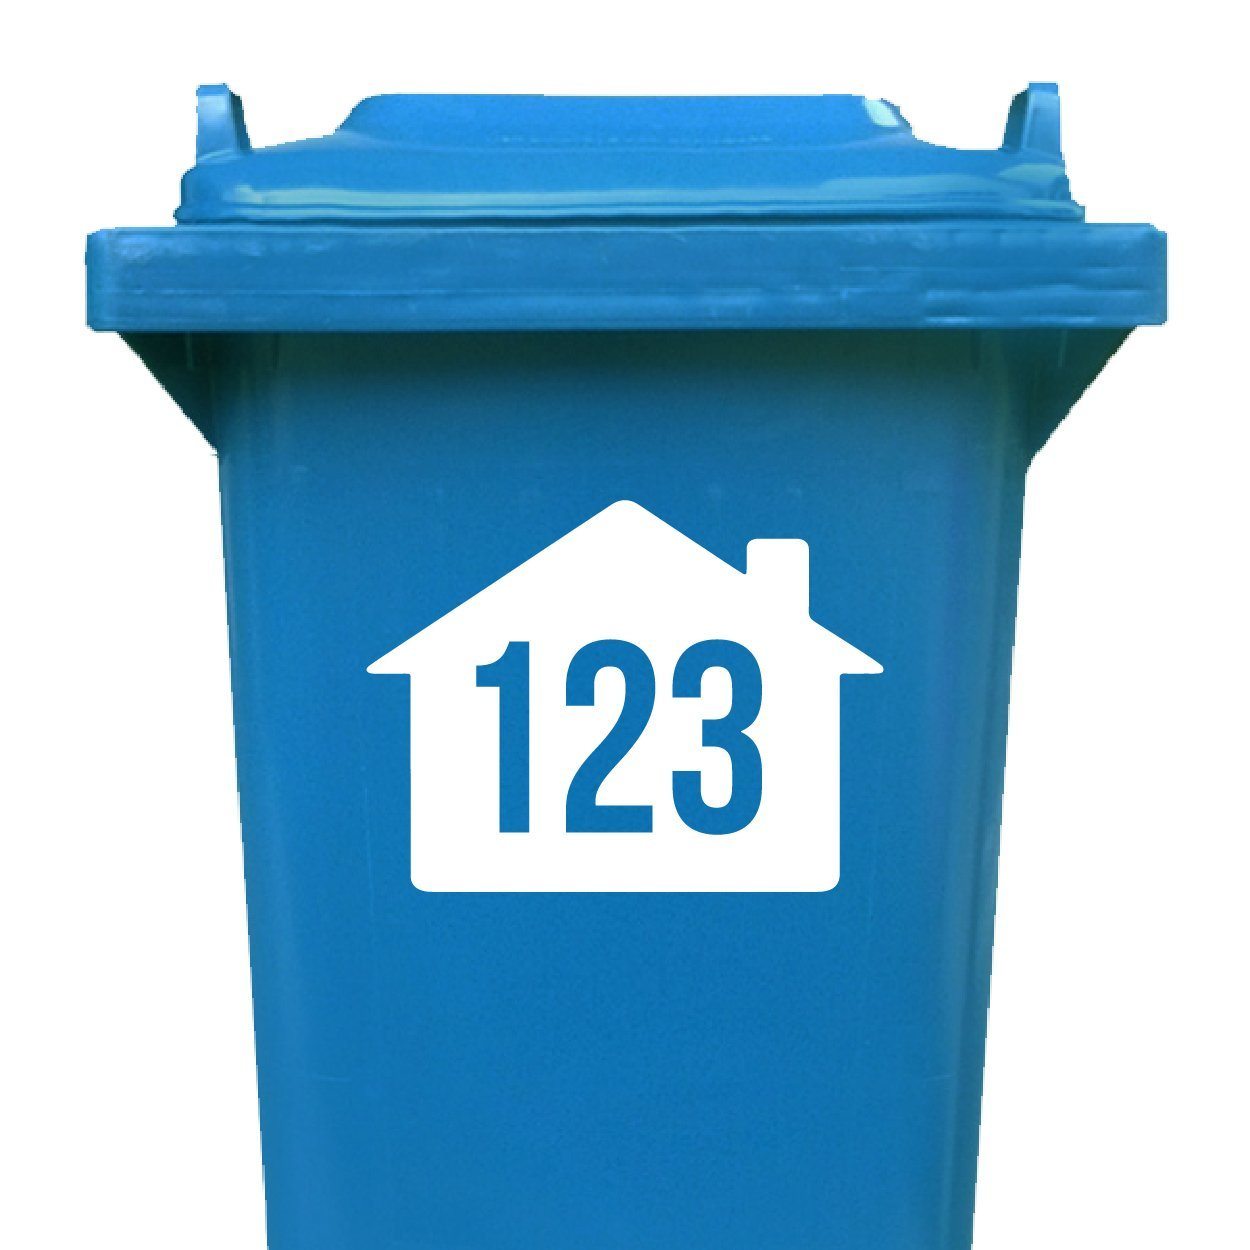 Set of 4 House Design Wheelie Bin Number Stickers - Apex Stickers